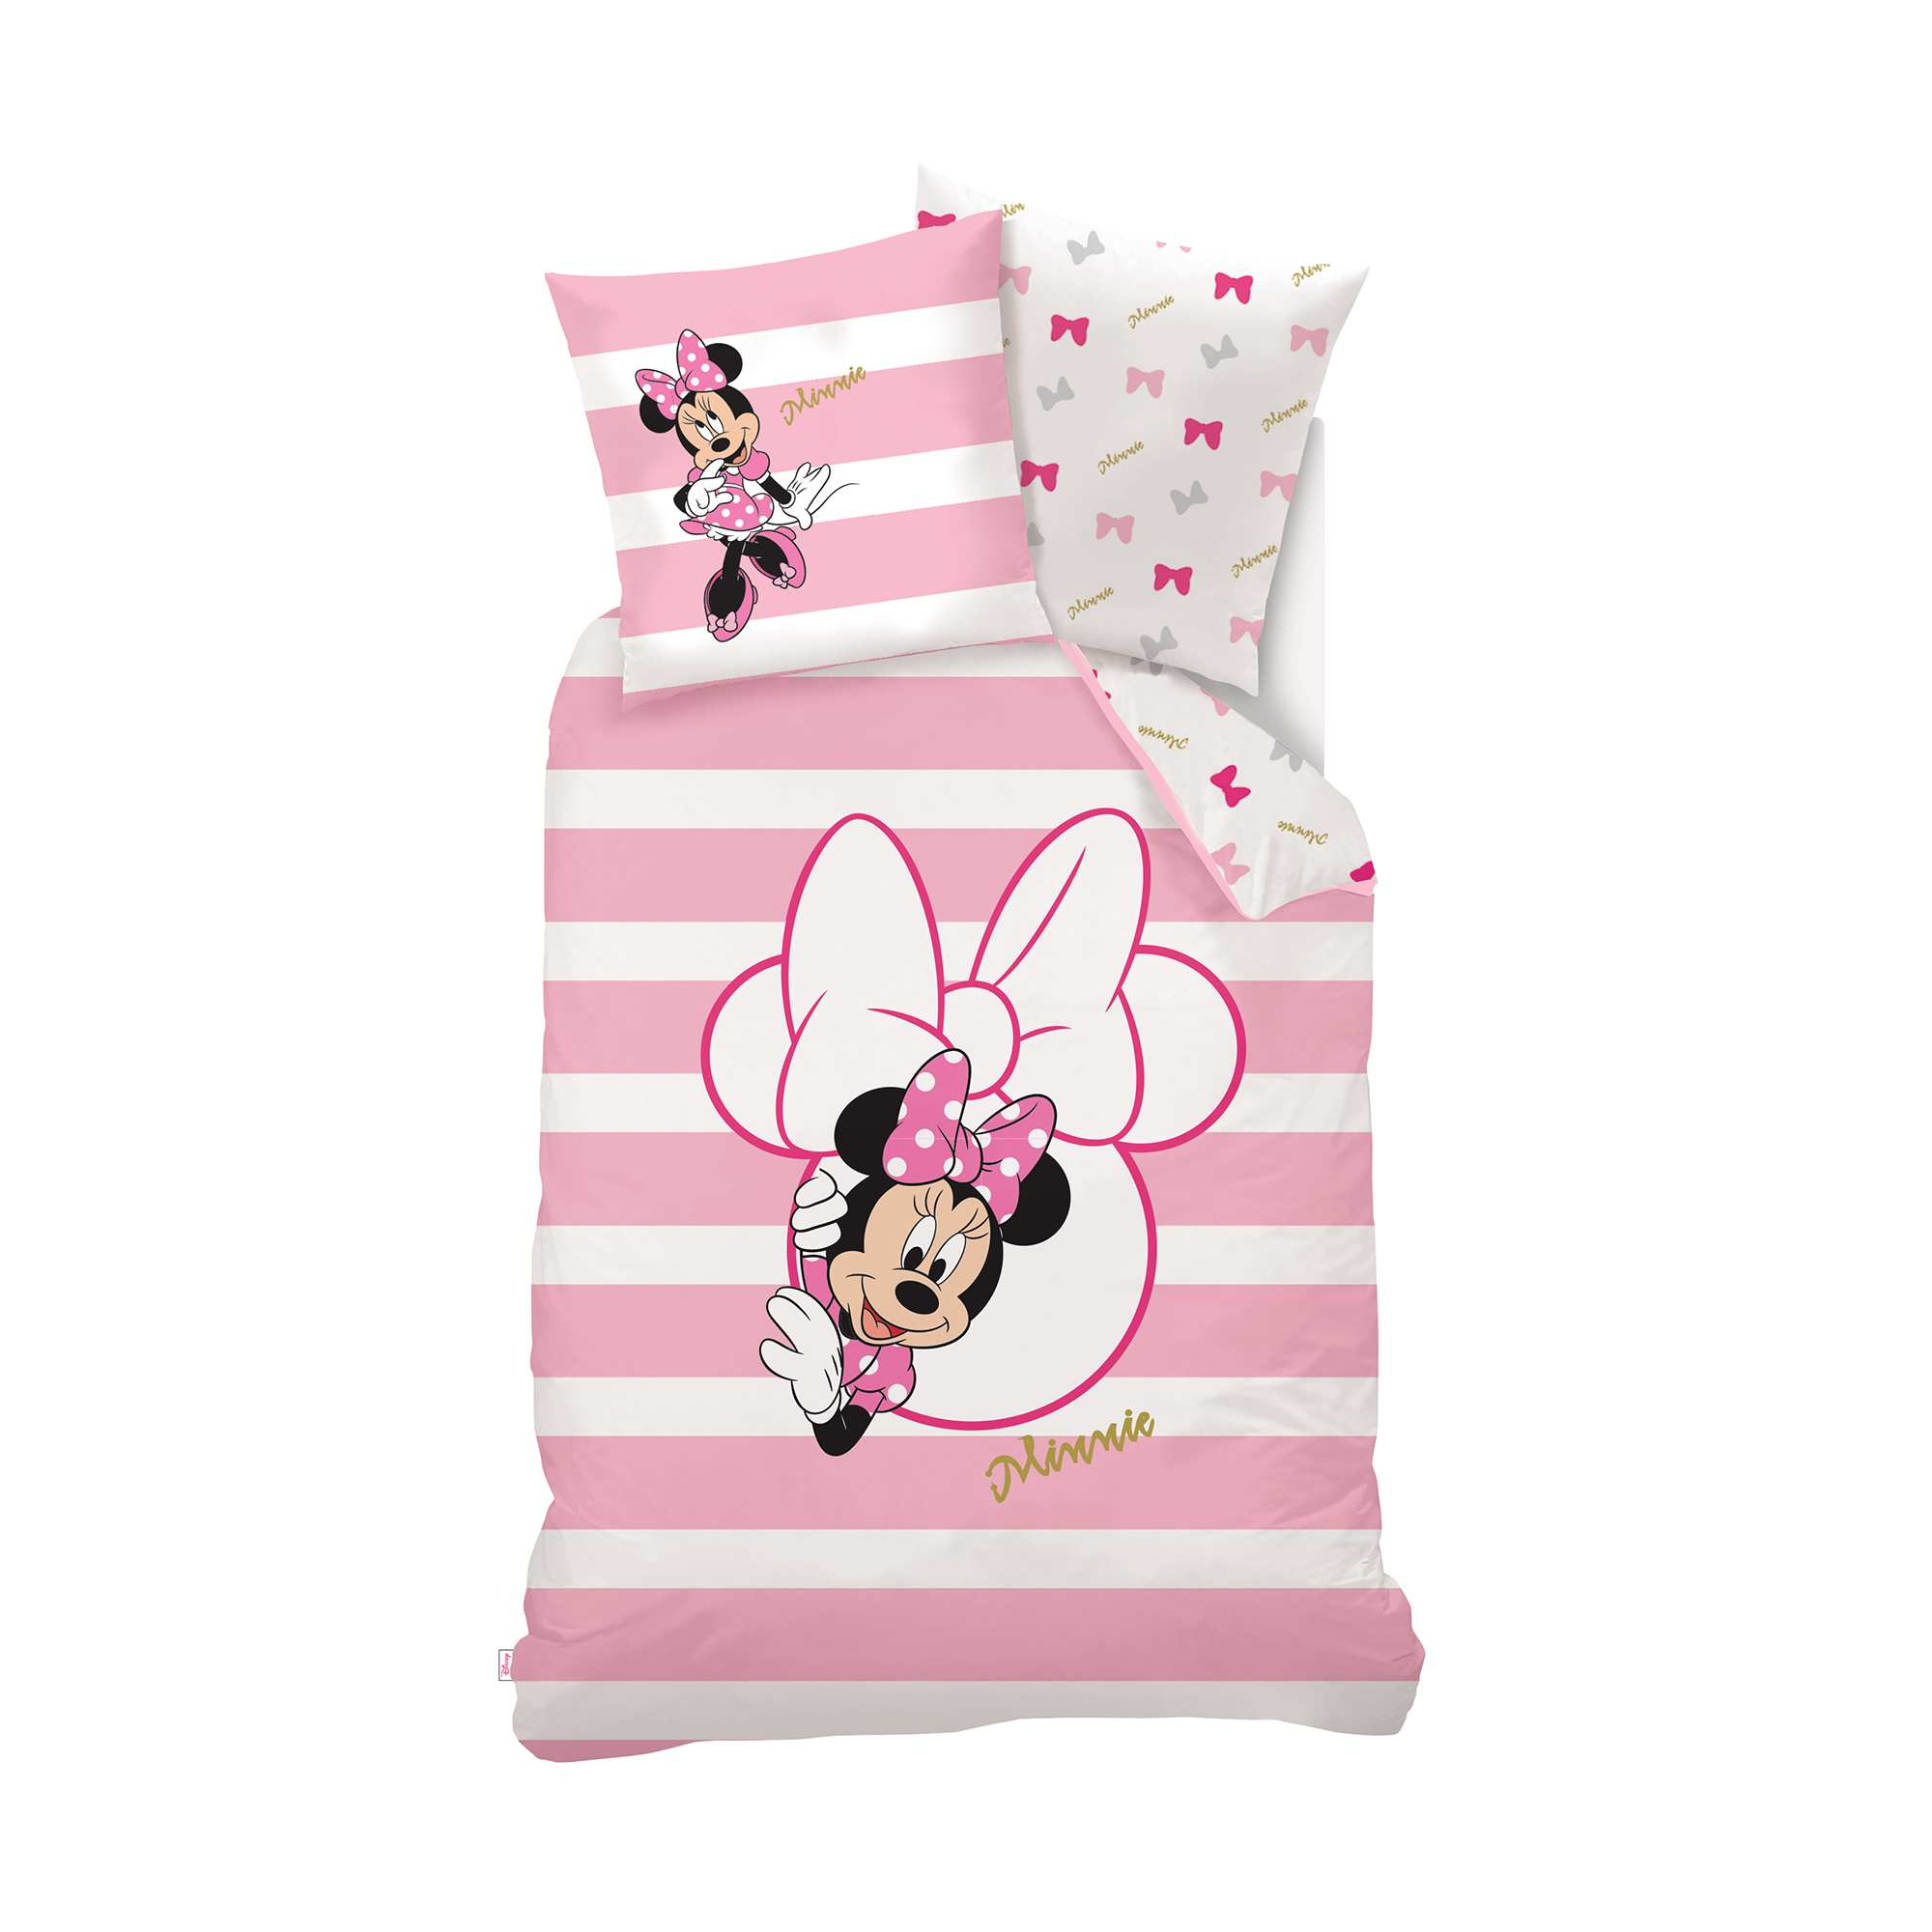 parure de lit 1 personne 39 minnie mouse 39 39 disney 39 linge de lit blanc rose kiabi 35 00. Black Bedroom Furniture Sets. Home Design Ideas